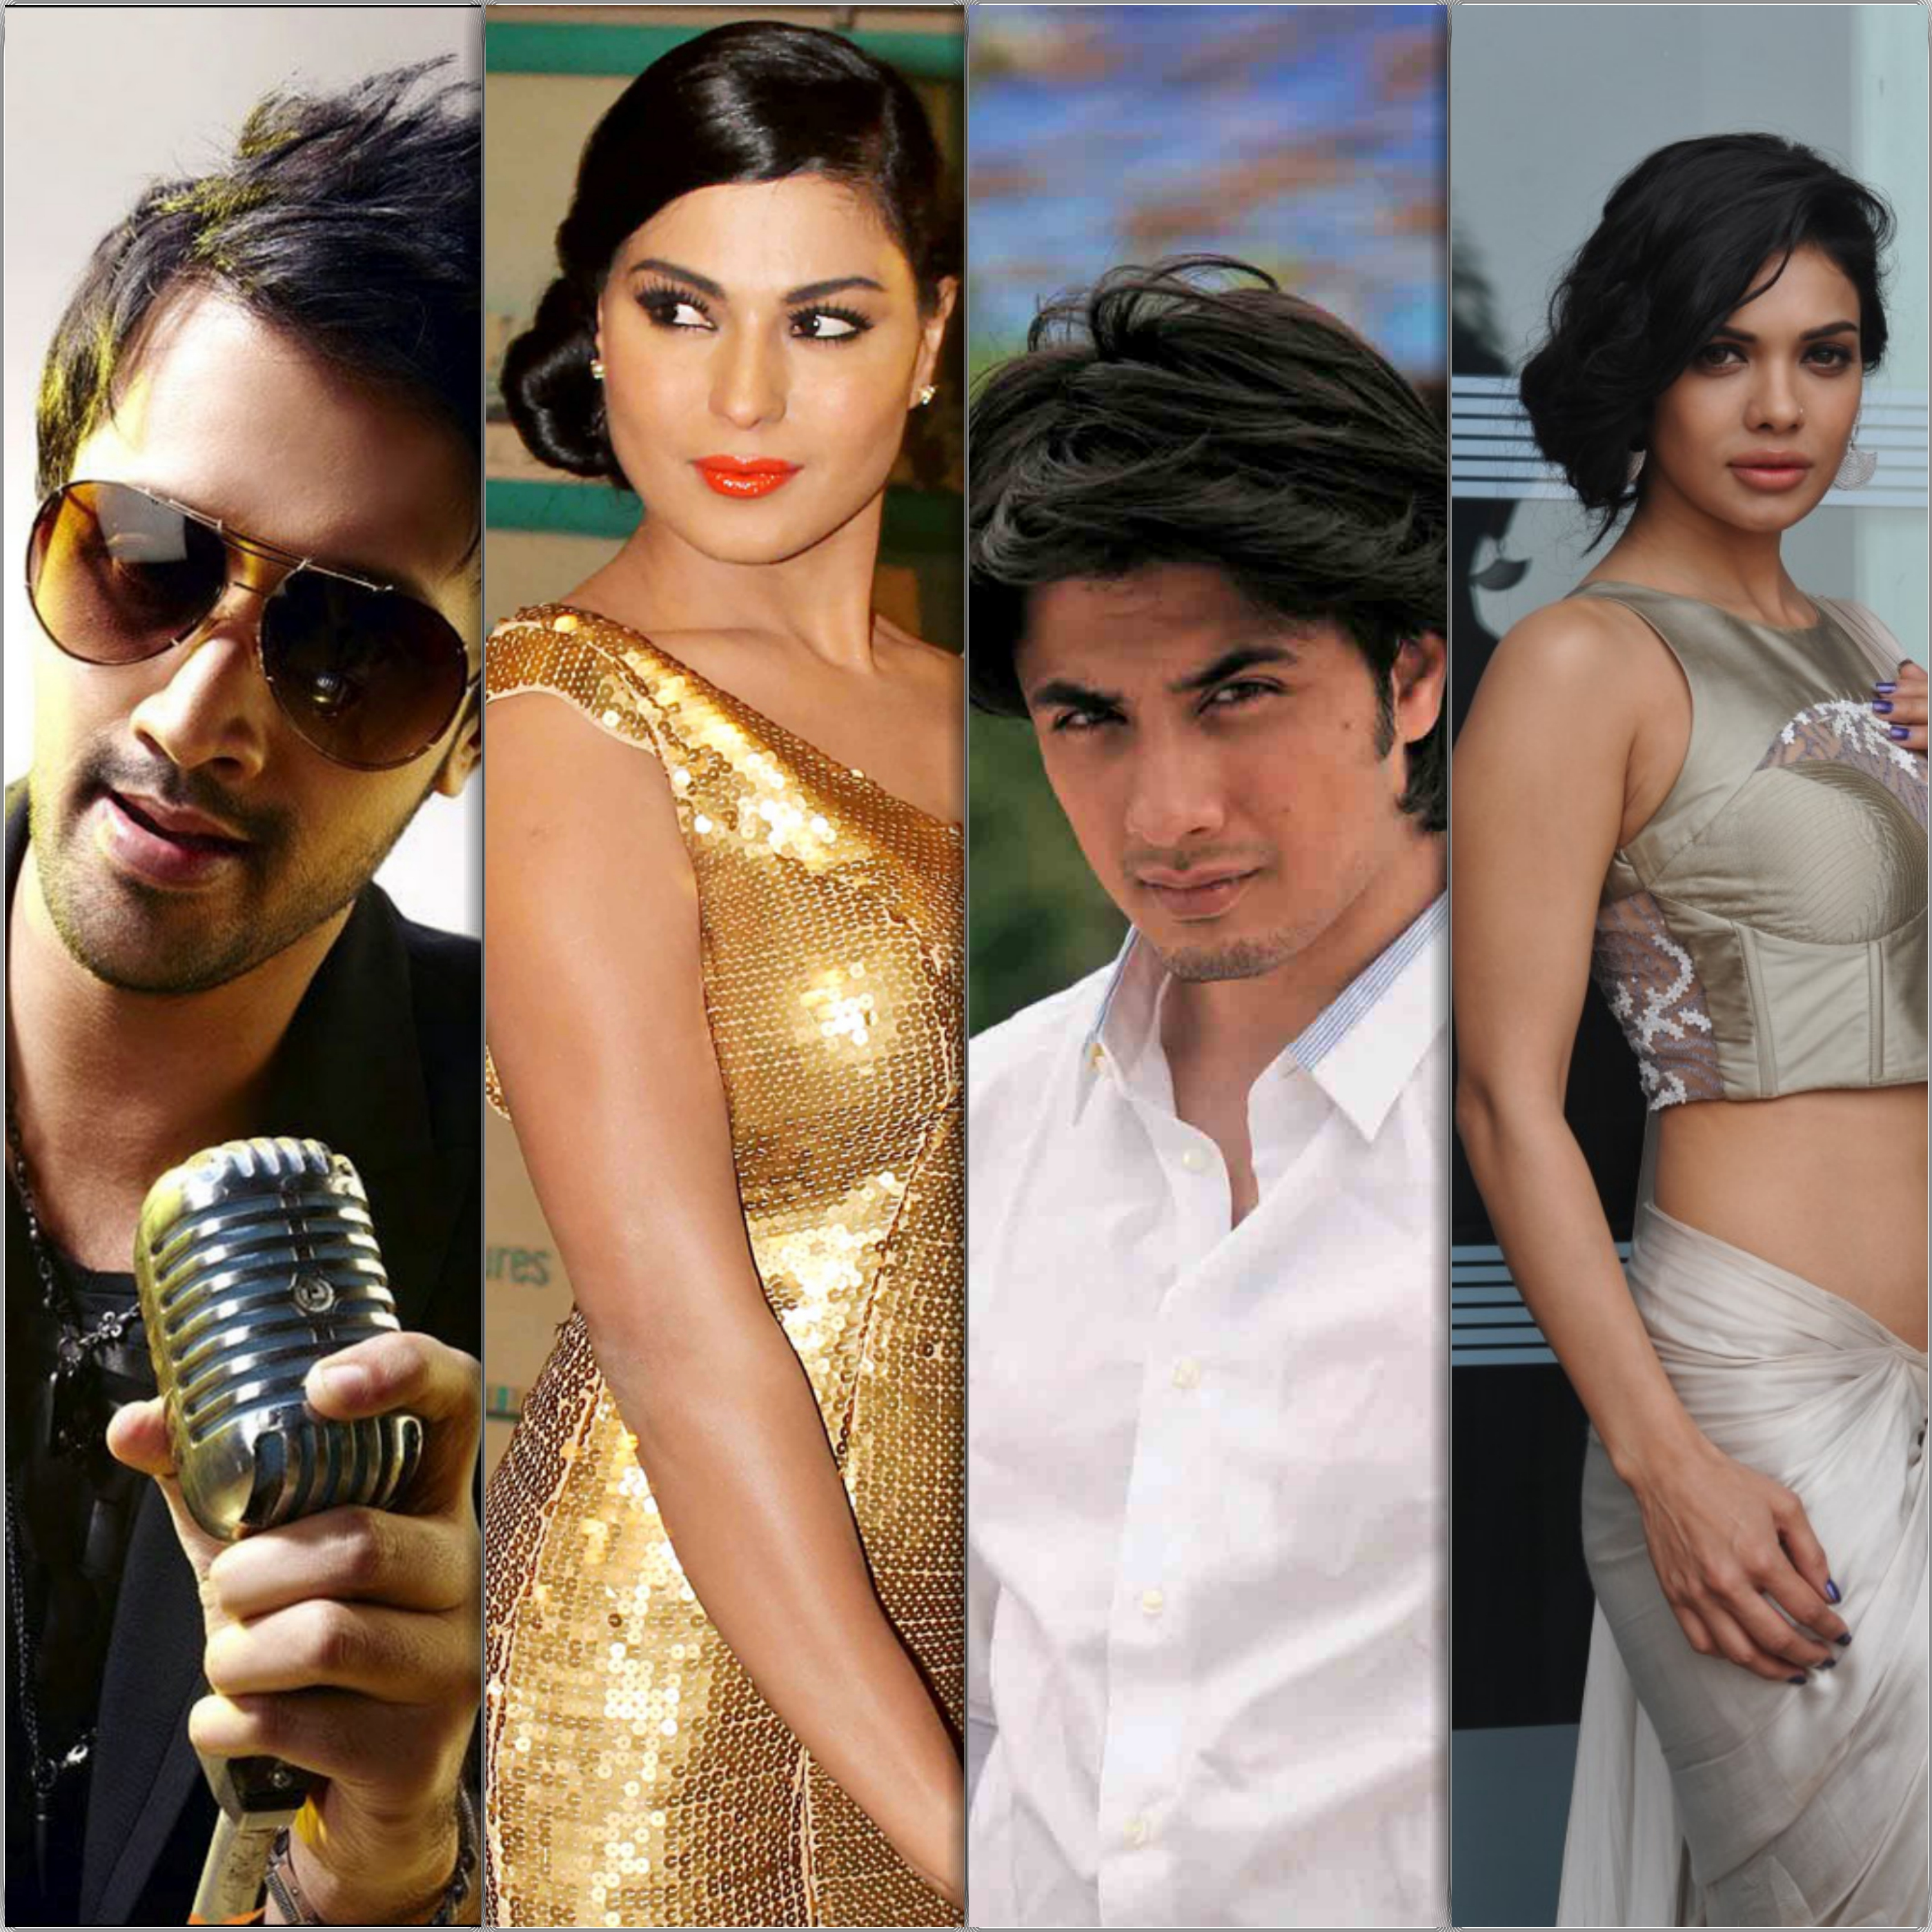 Top 10 Most Famous Pakistani Actors in Bollywood